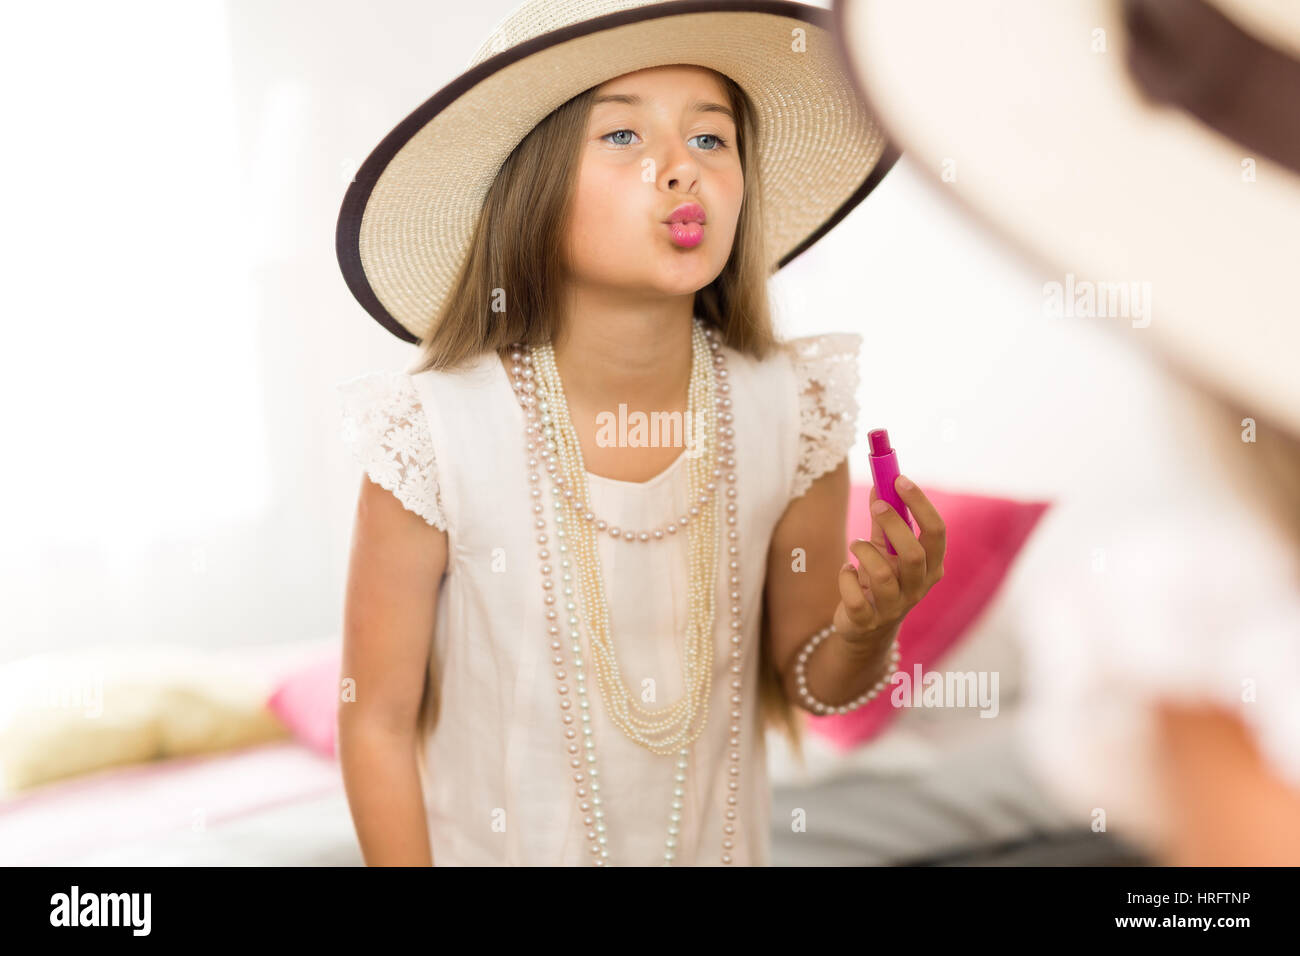 Mirror reflection shot of little girl playing dress up in mothers jewels and hat putting makeup and pink lipstick - Stock Image